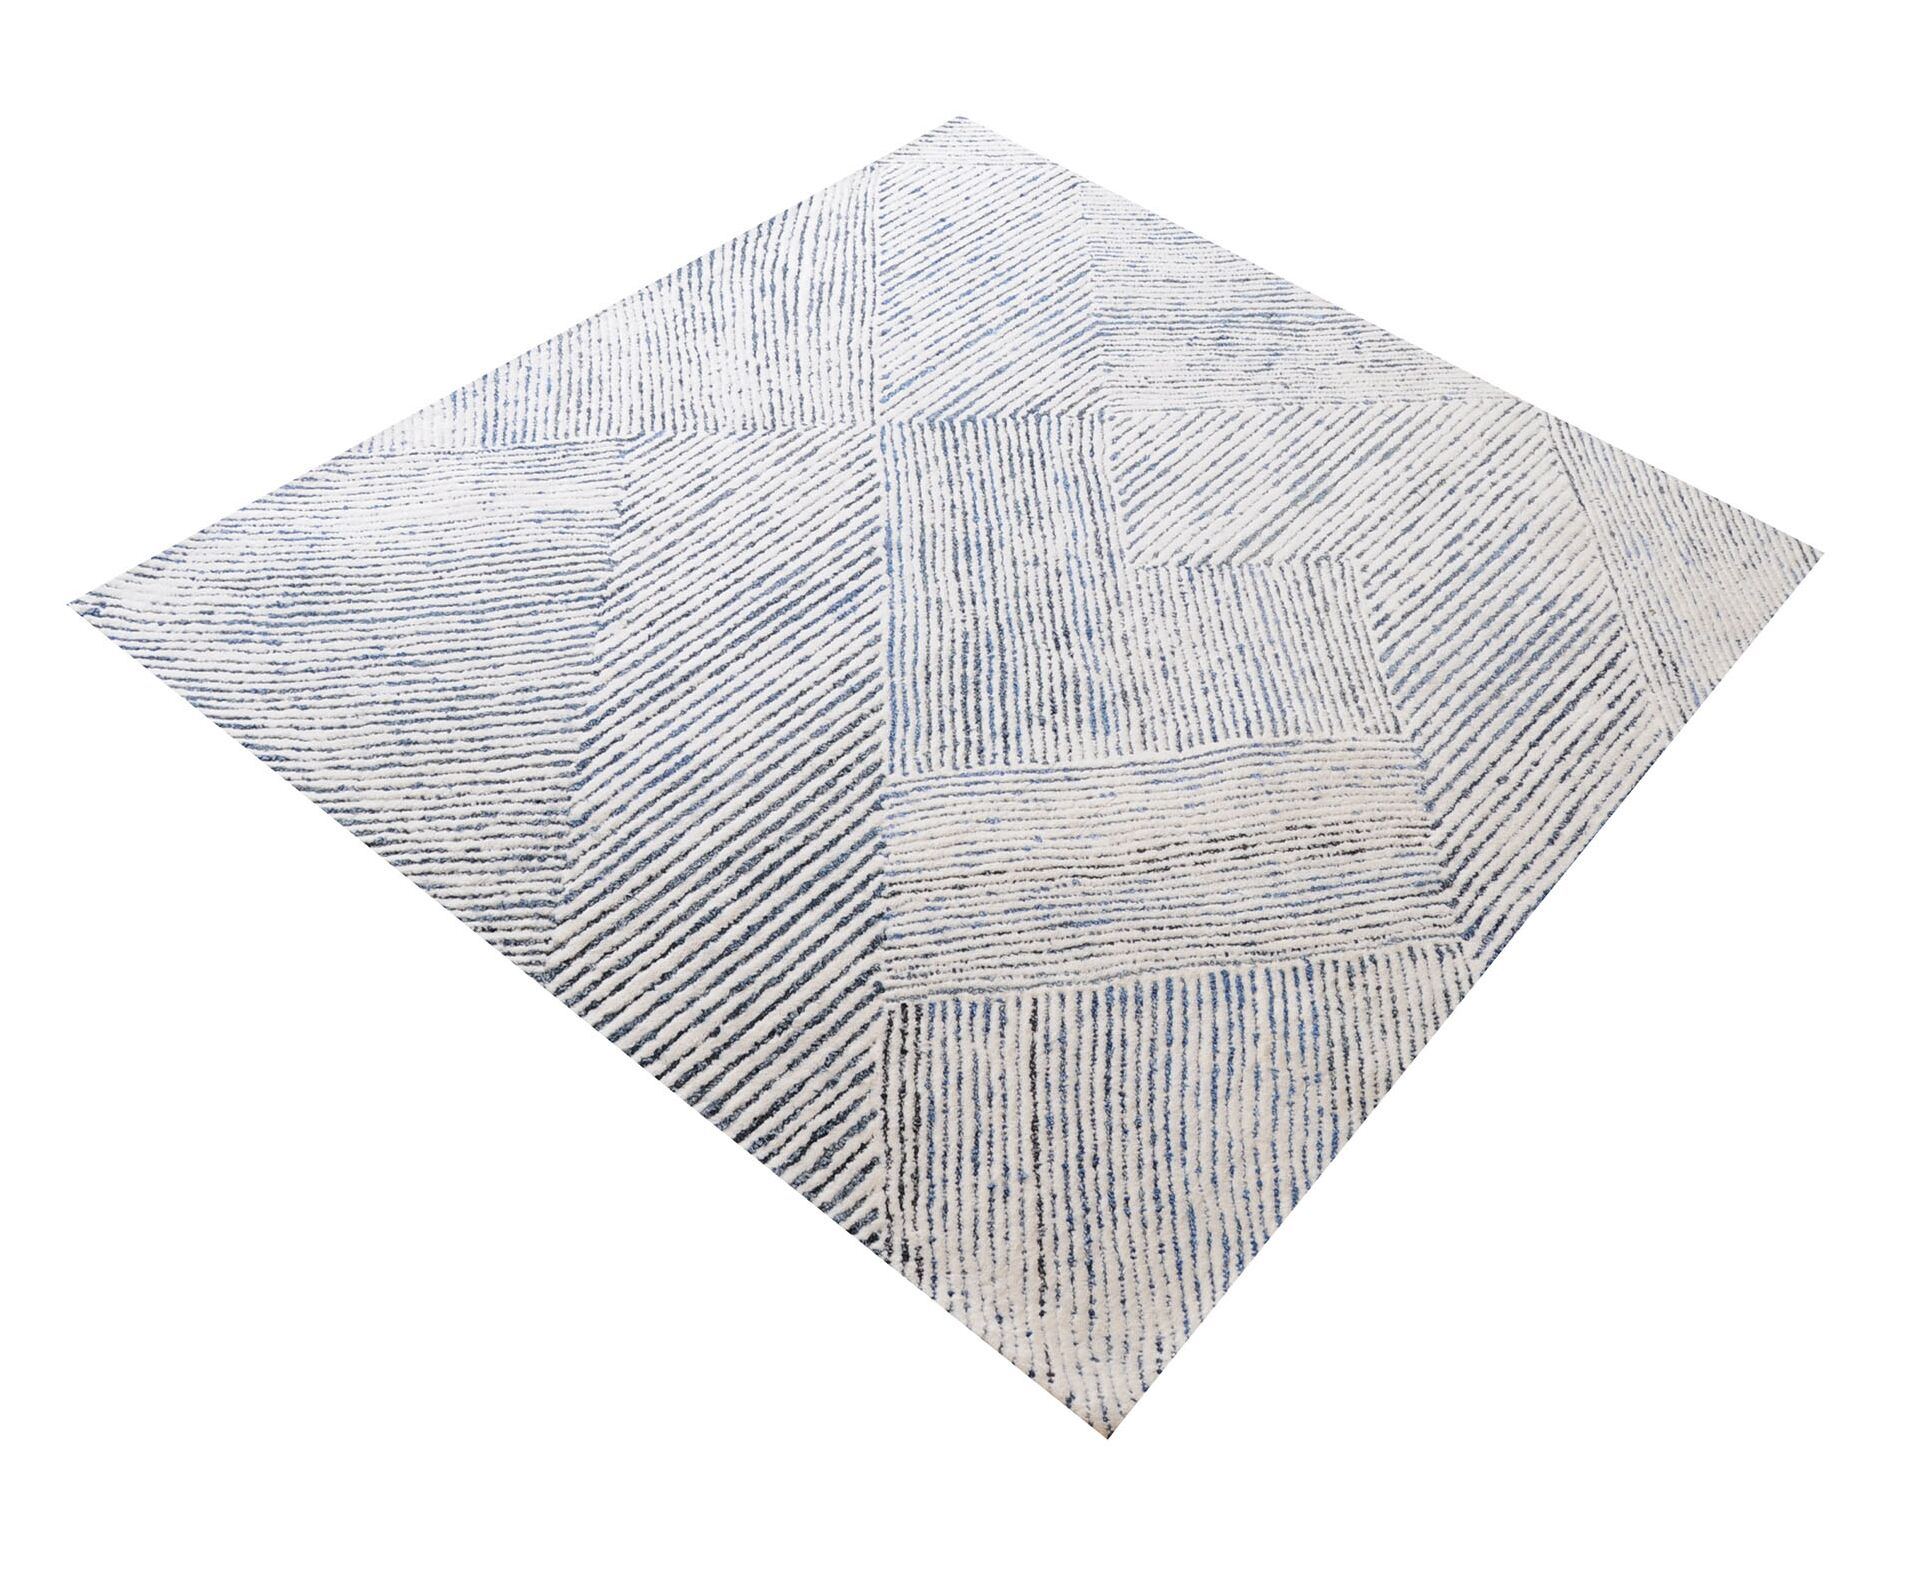 Lia Dryden Hand-Tufted Ivory/Blue Area Rug Rug Size: Rectangle 3' x 5'